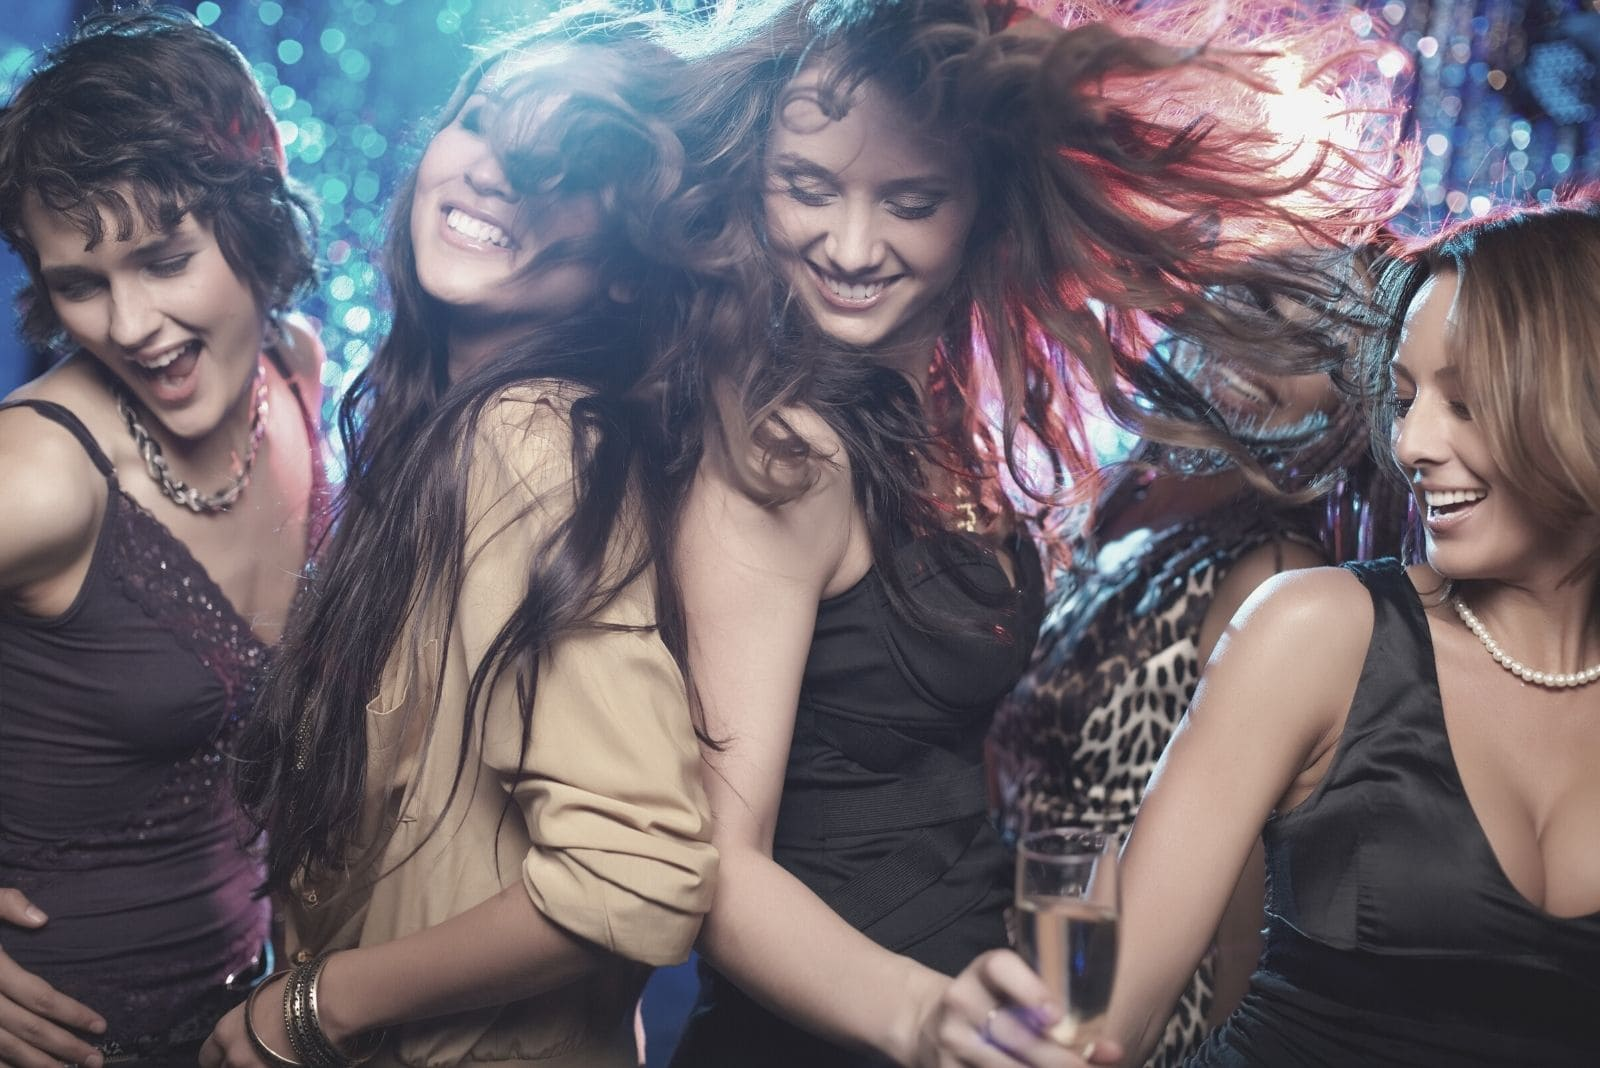 group of sexy woman dancing and drinking in a club party animal concept